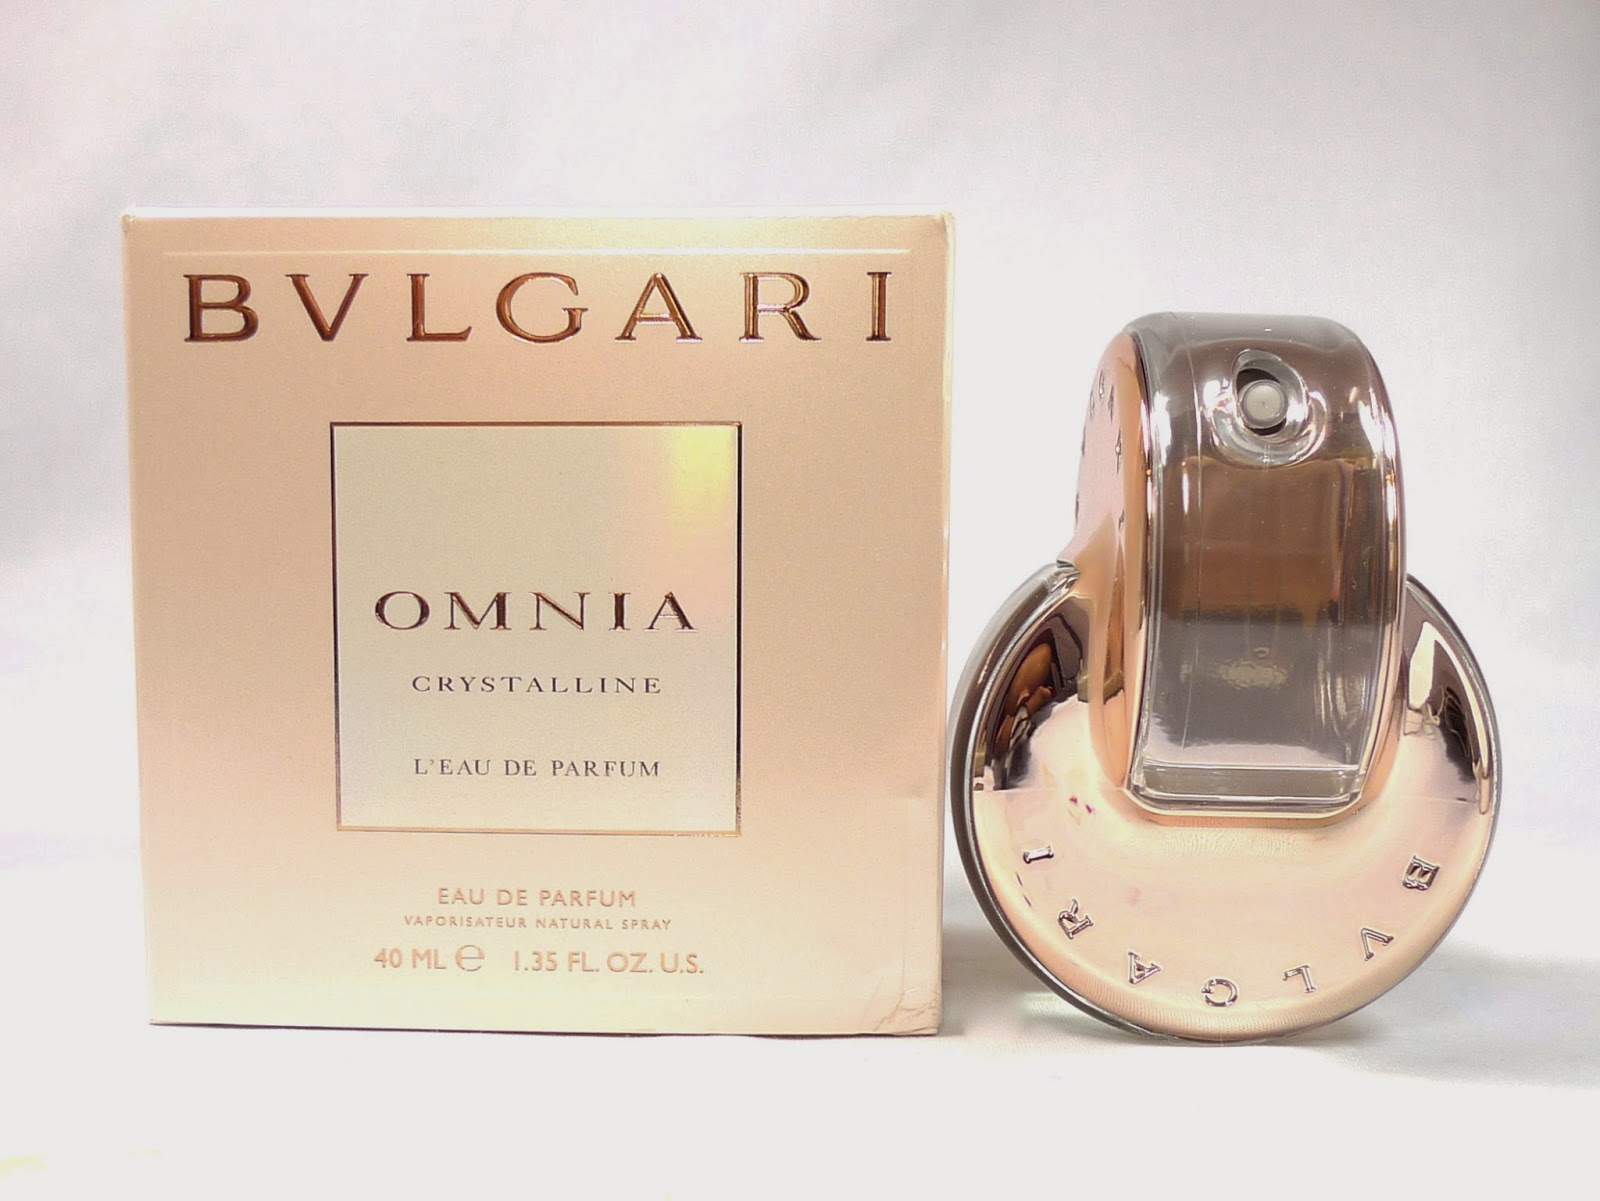 bvlgari omnia crystalline l 39 eau de parfum review the. Black Bedroom Furniture Sets. Home Design Ideas